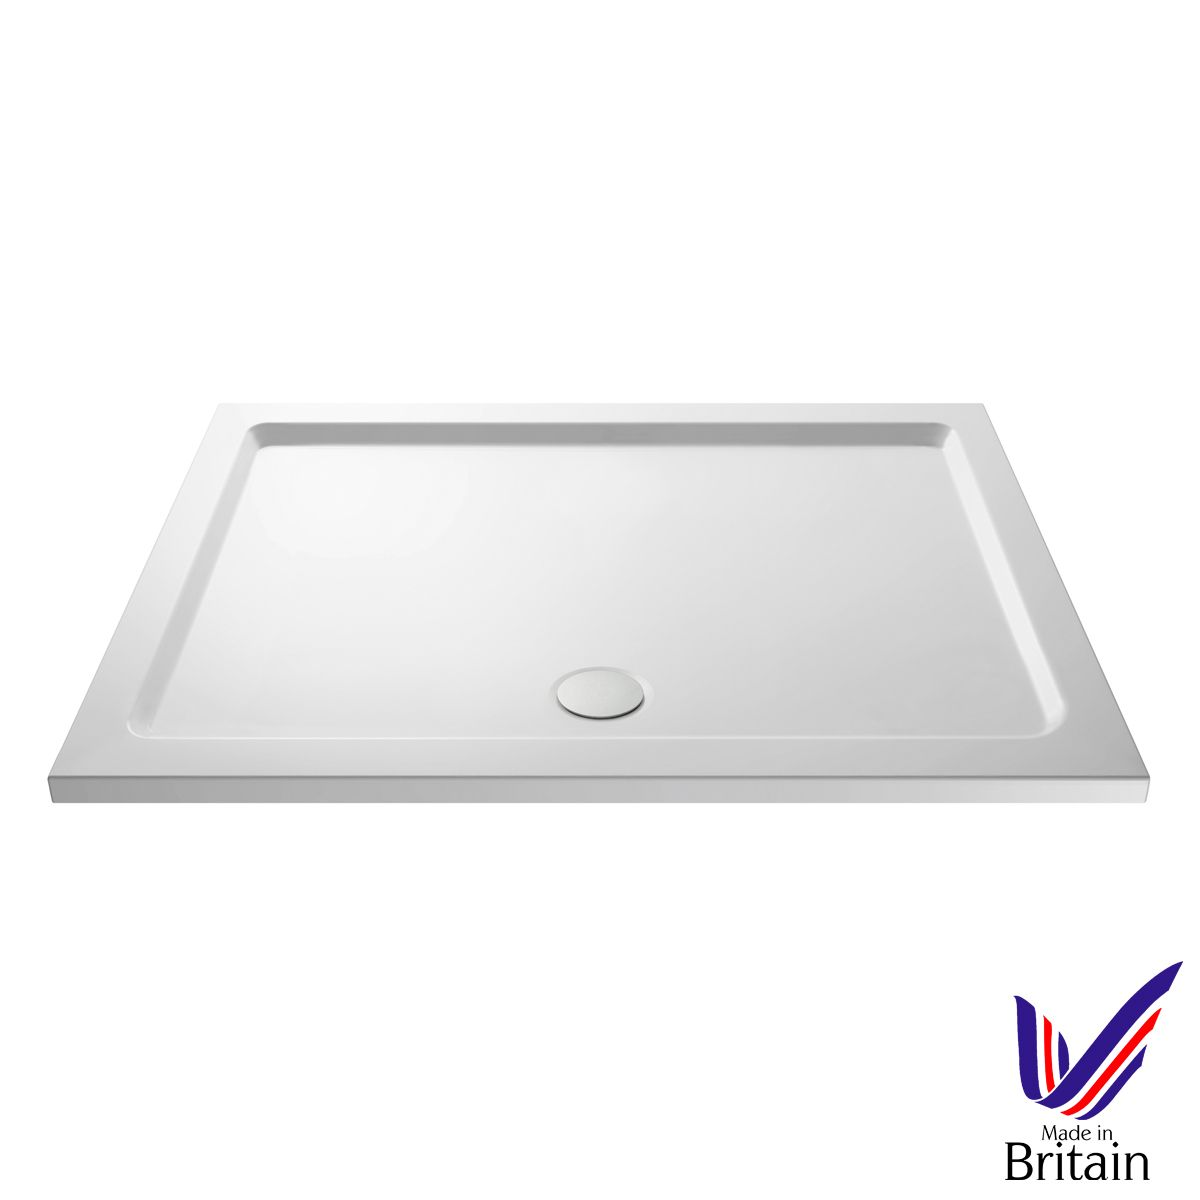 1600 x 900 Shower Tray Rectangular Low Profile by Pearlstone